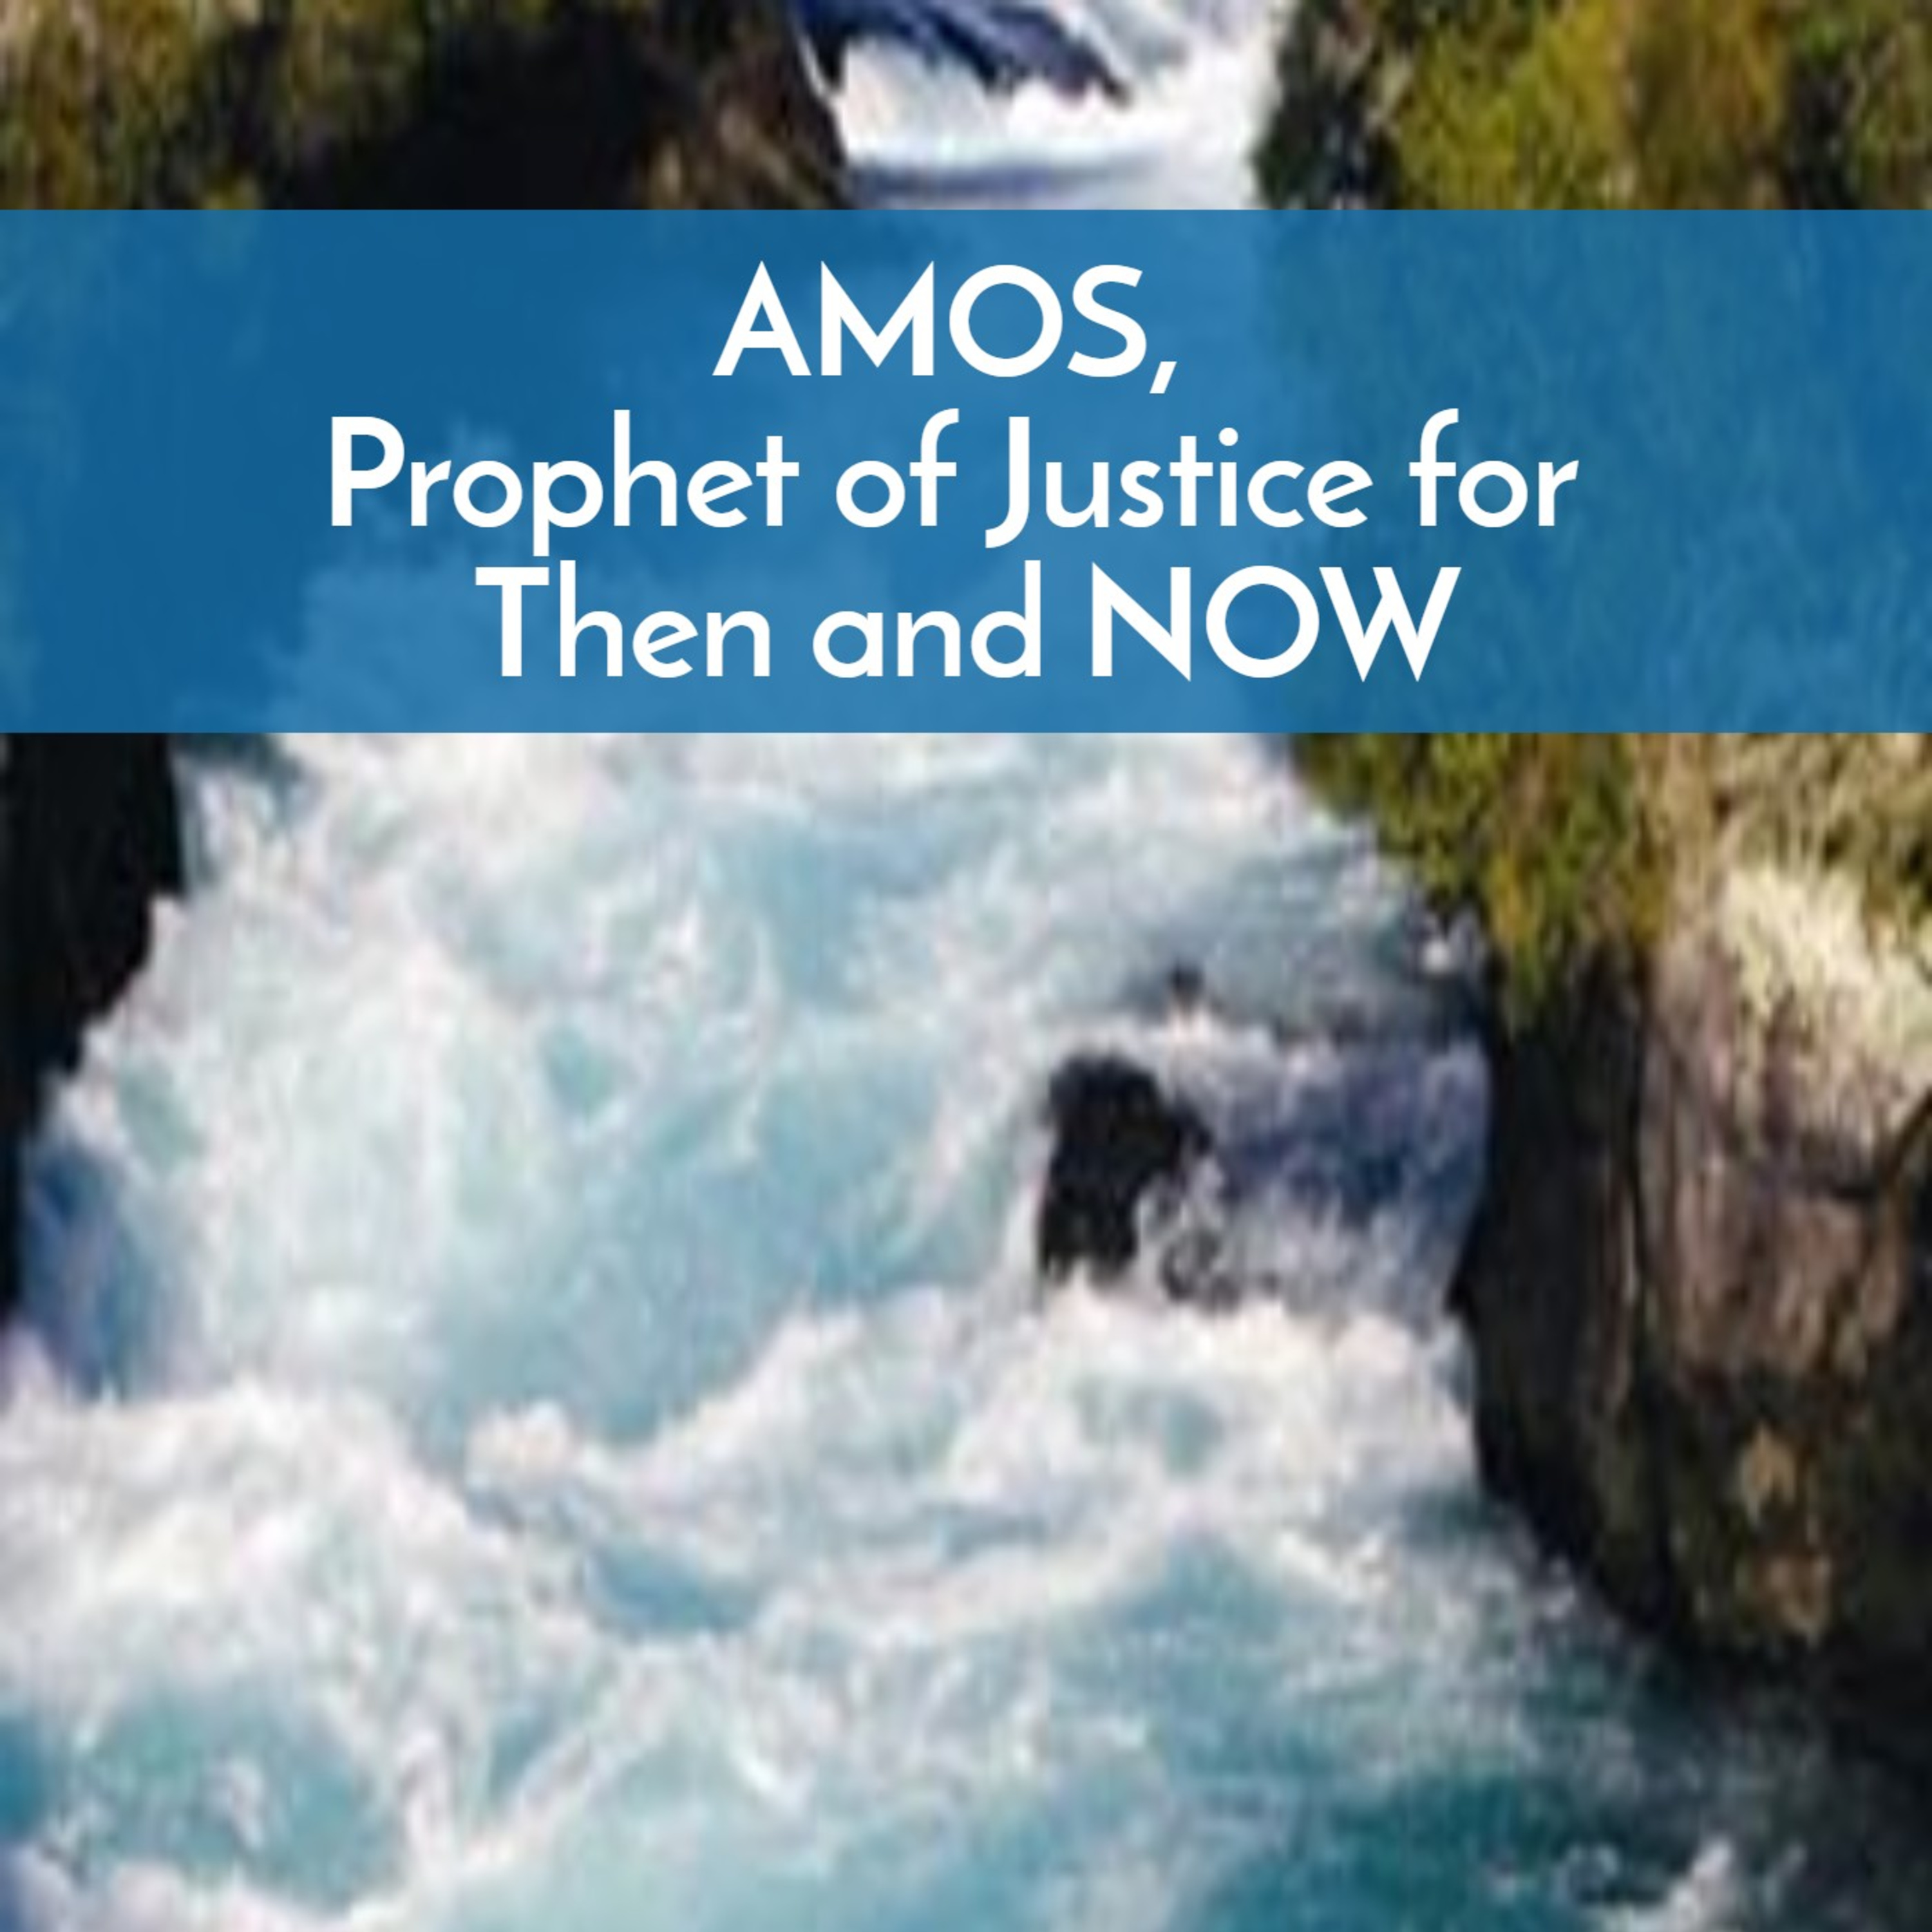 #40 Amos, Prophet of Justice, then and NOW